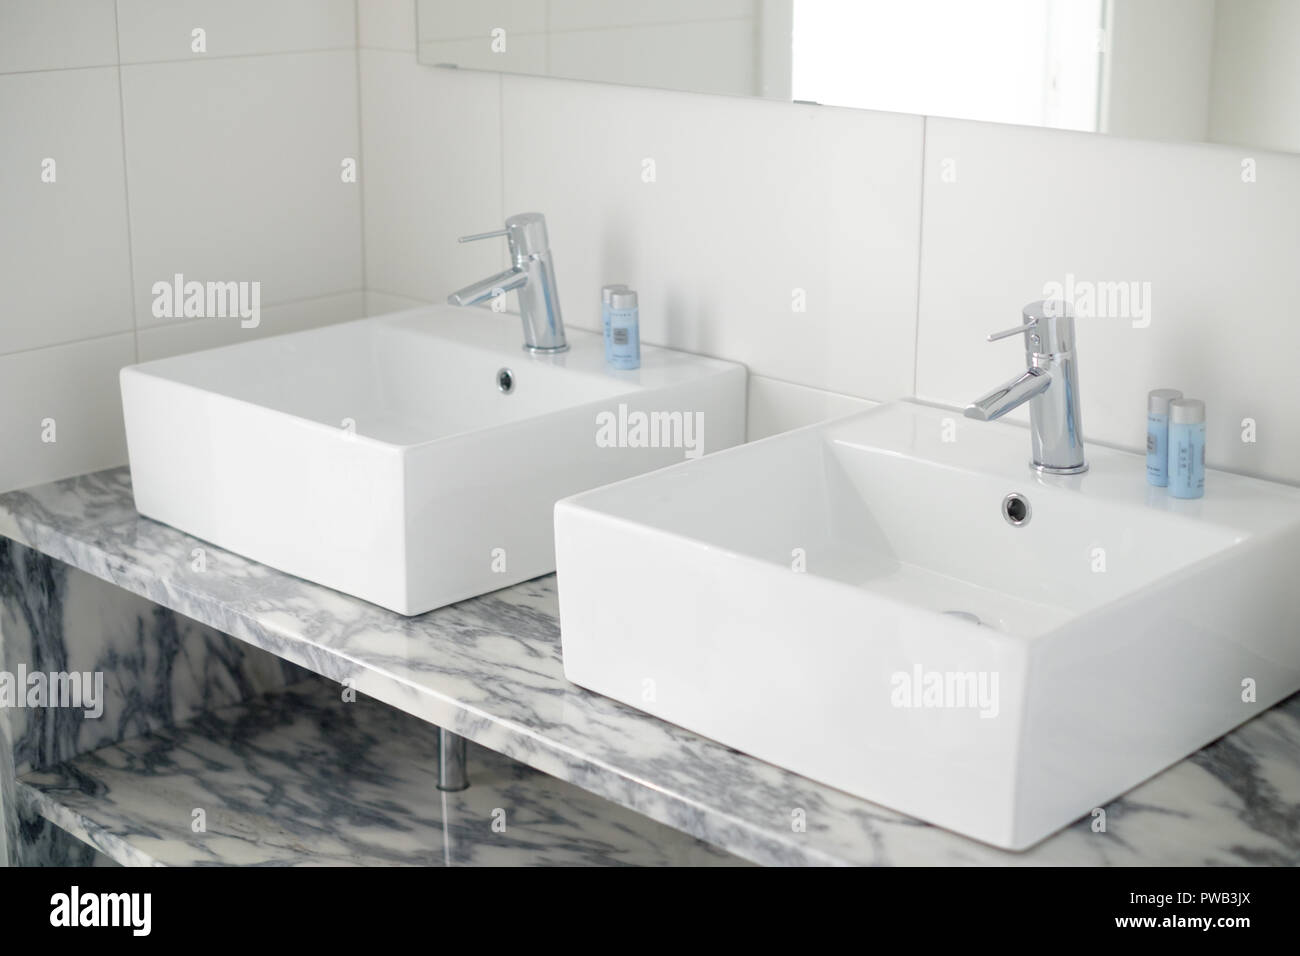 Bagno Design Bradford His And Hers Bathroom Stock Photos His And Hers Bathroom Stock